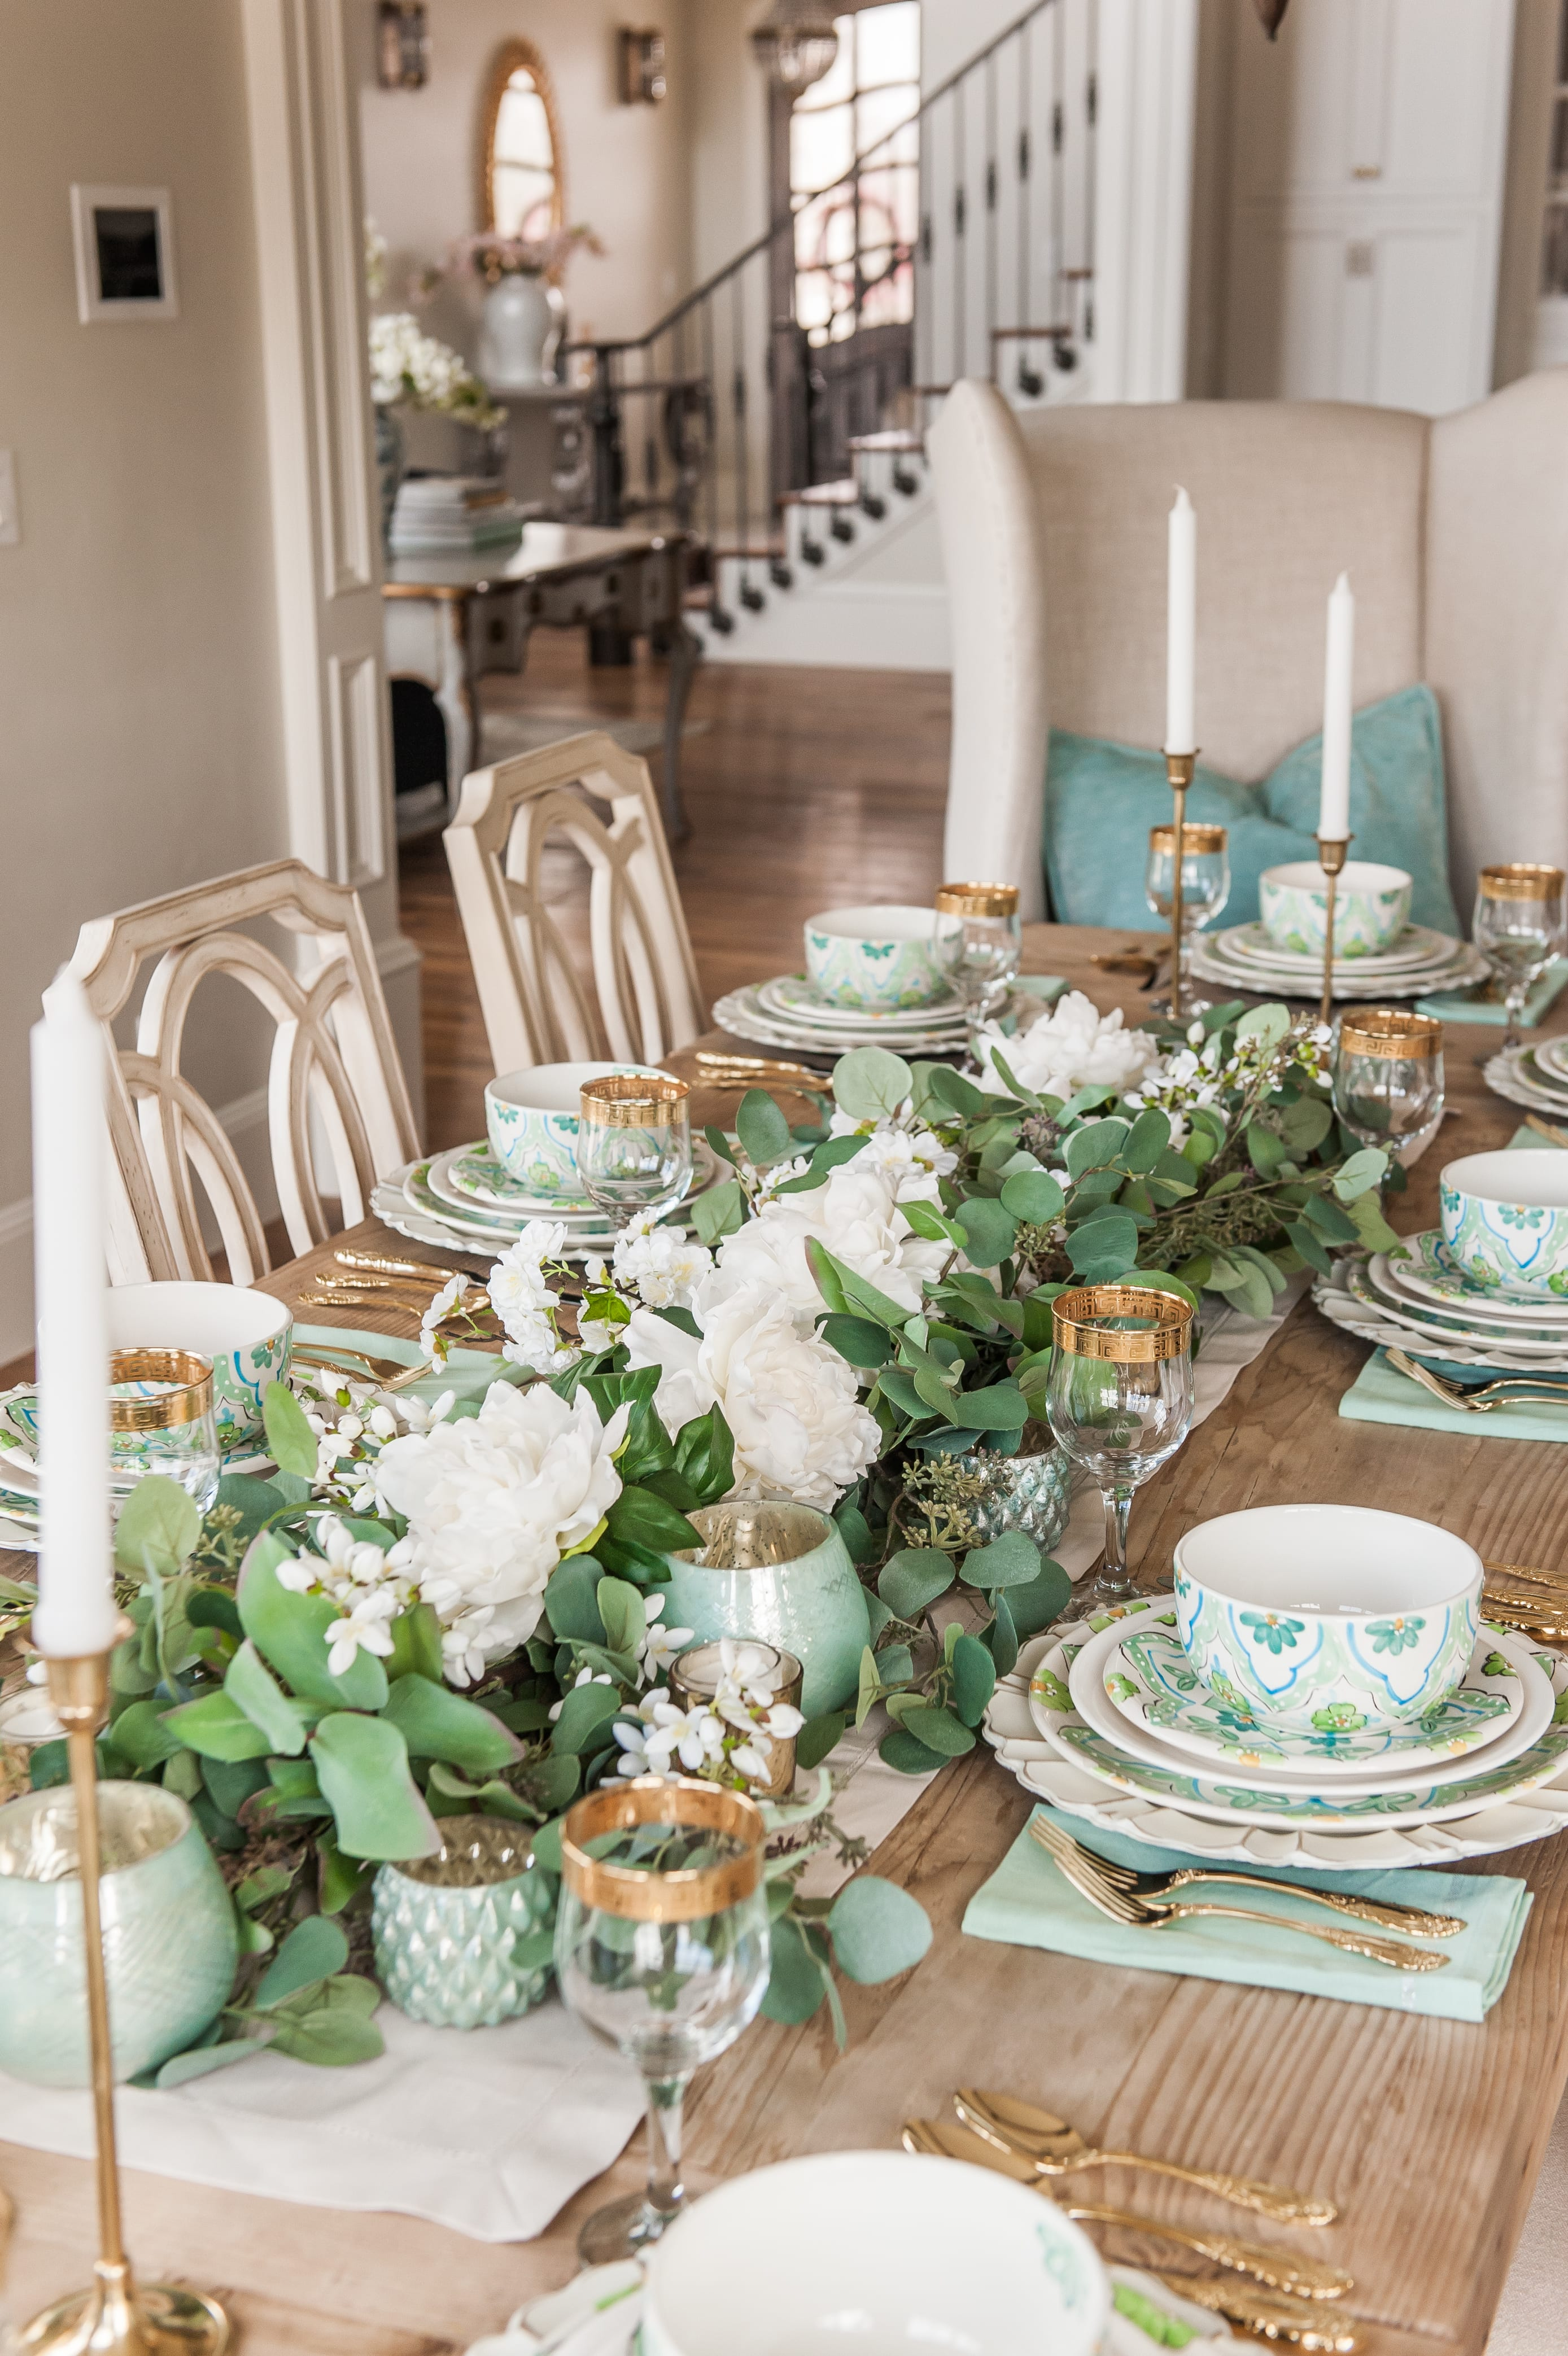 Tablescape spring Tablescapes st. patricks day table decor blue green and white table setting dinnerware easter tablescape easter dinner table dining room table setting place setting table decor idea garland table runner centerpiece faux flowers